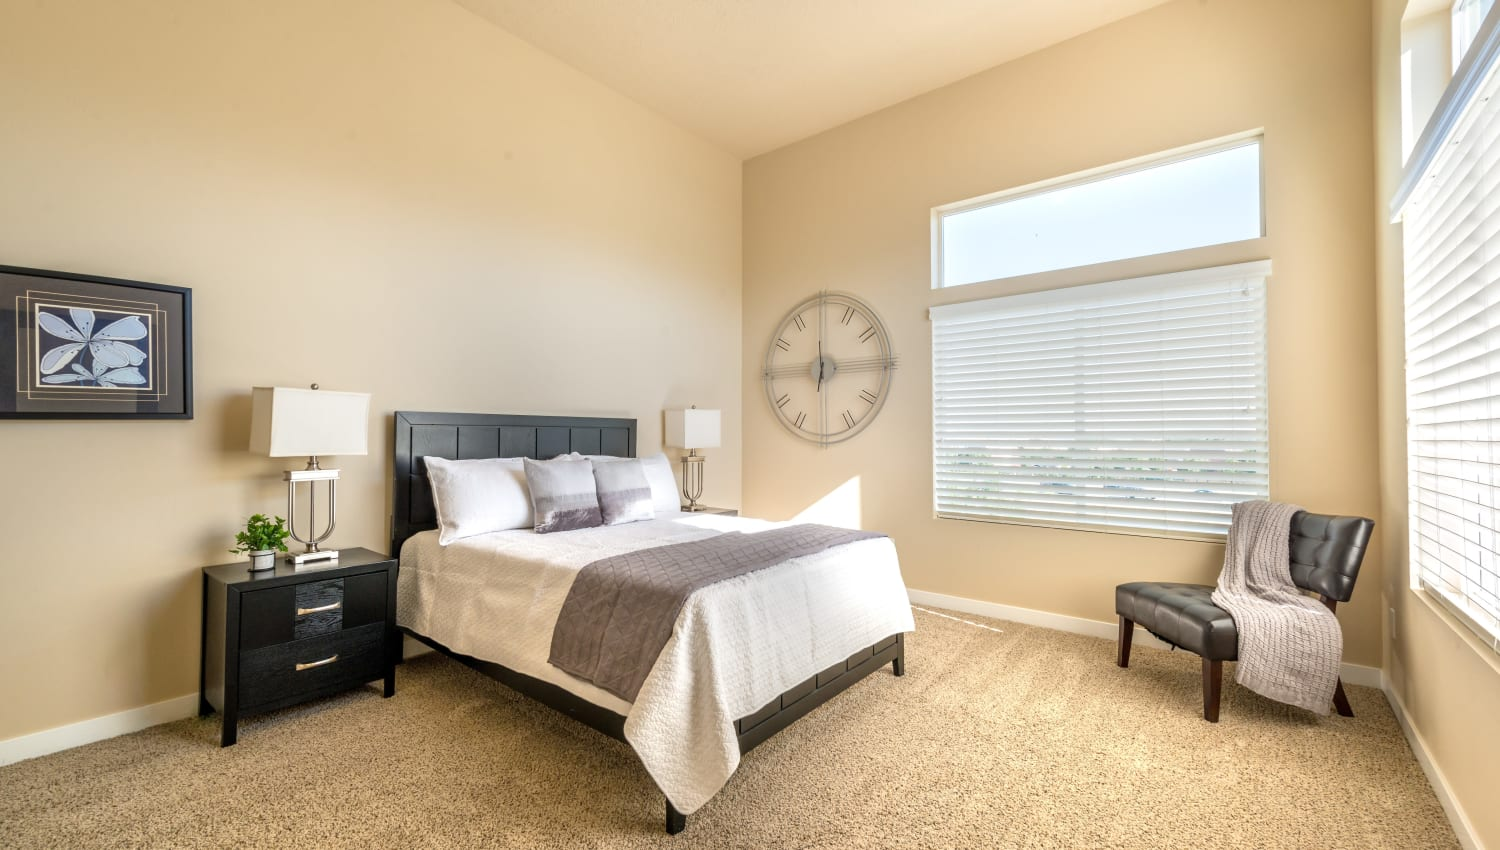 Spacious bedroom at Olympus at the District in South Jordan, Utah features a large window